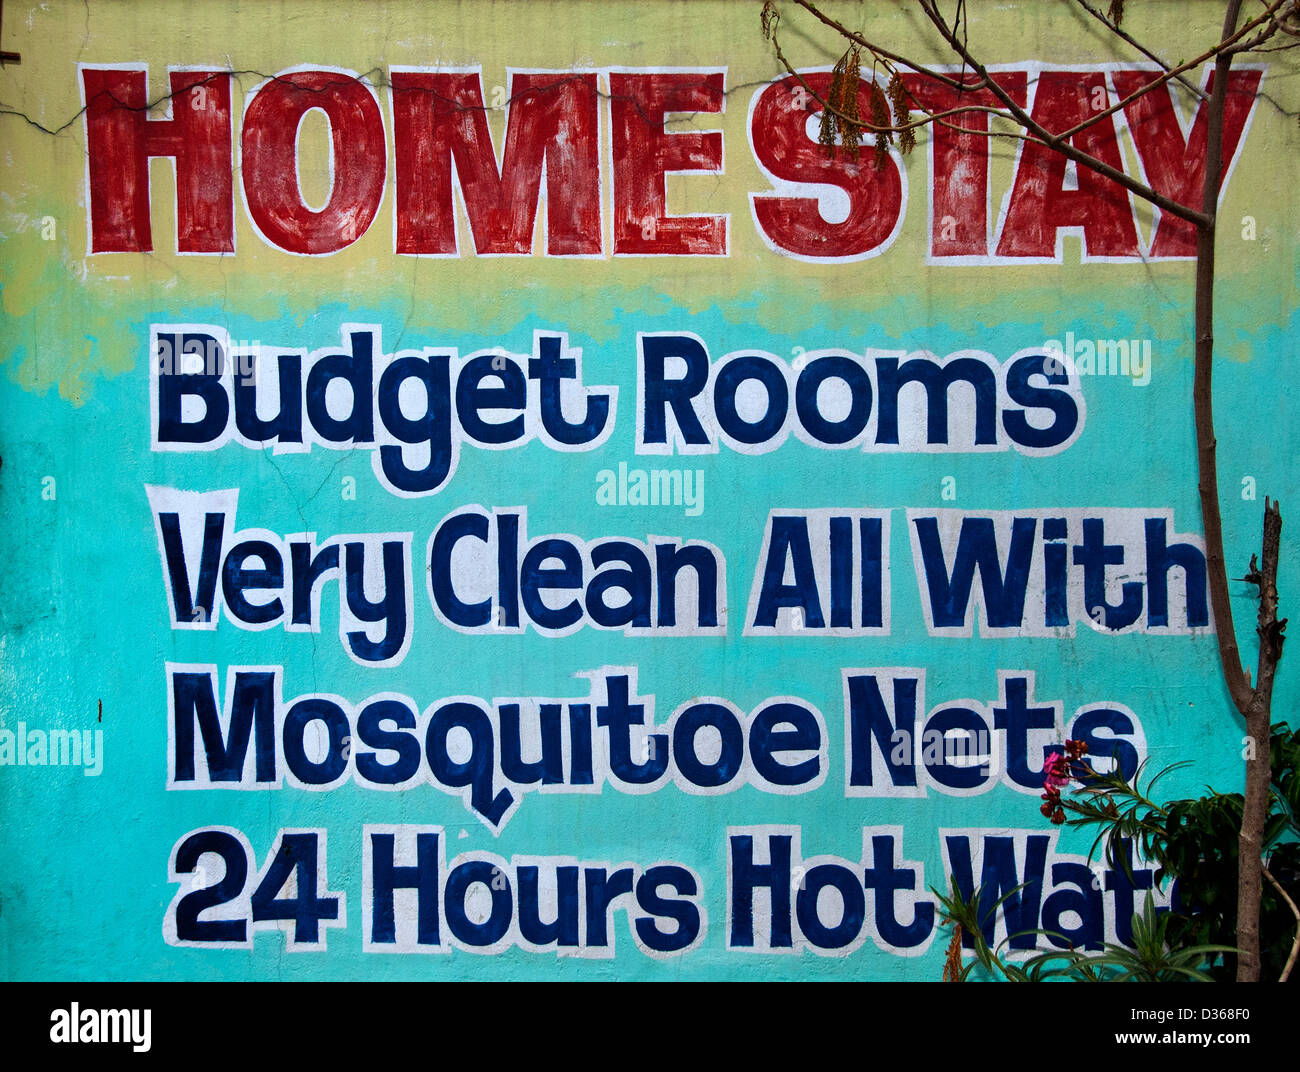 Home stay Budget Rooms Covelong  ( Kovalam or Cobelon ) India Tamil Nadu - Stock Image